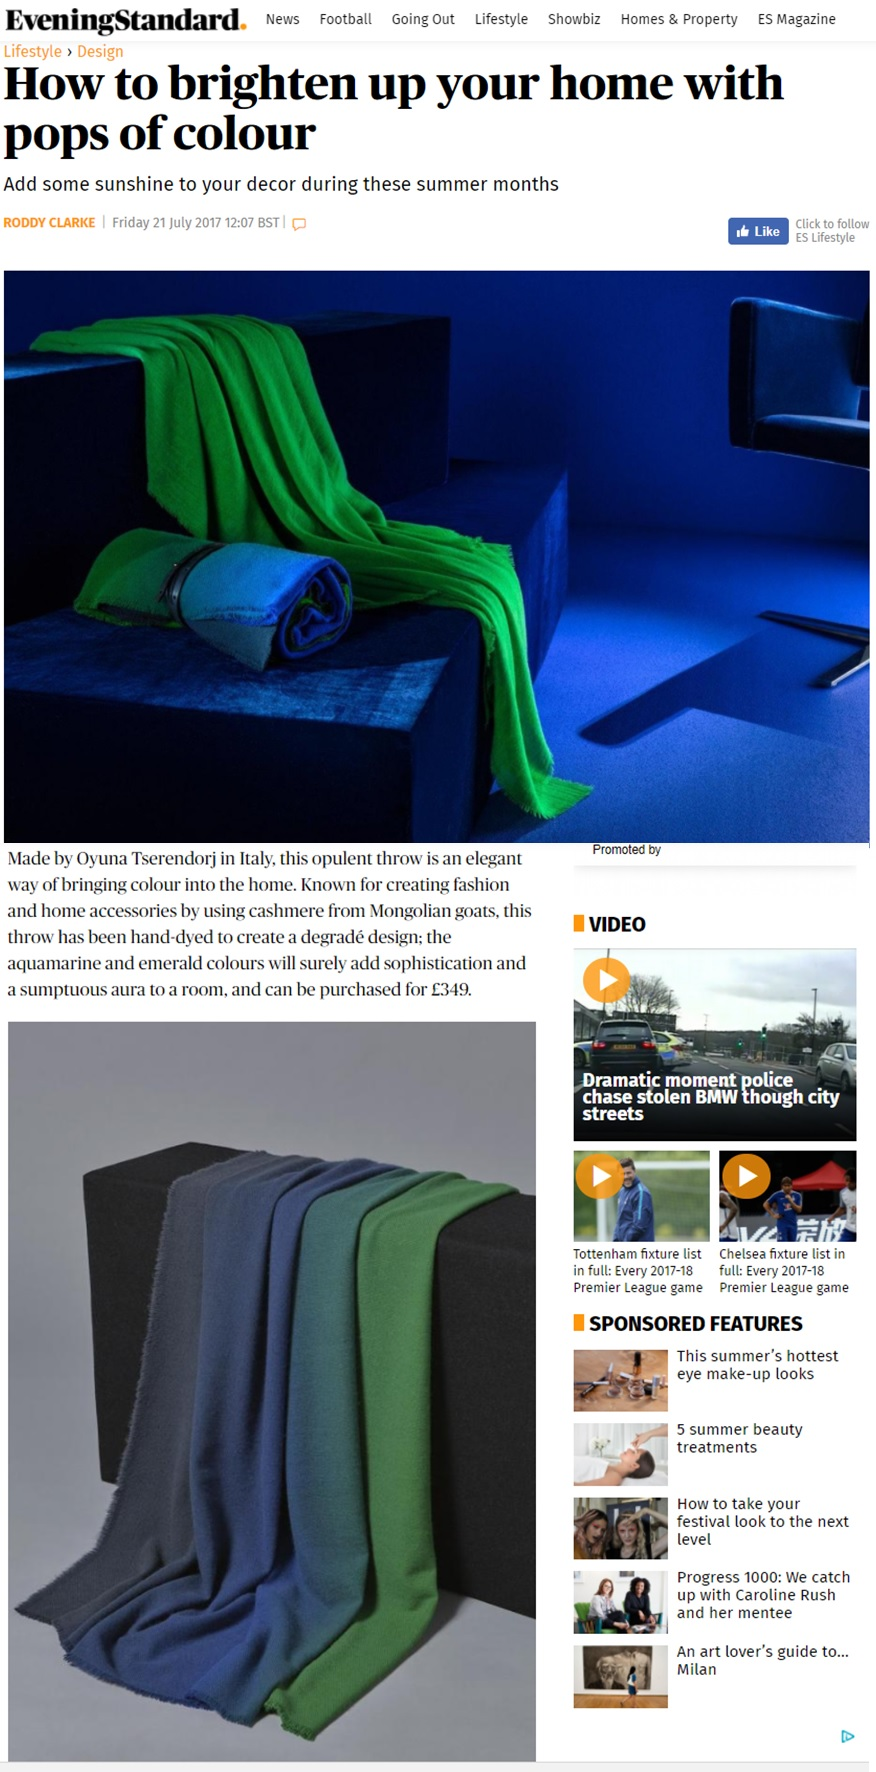 - OYUNA Sila Cashmere Throw in Ultramarine and Emerald featured in the Evening Standard Magazine's 'How to brighten up your home with pops of colour'.by Roddy Clarke